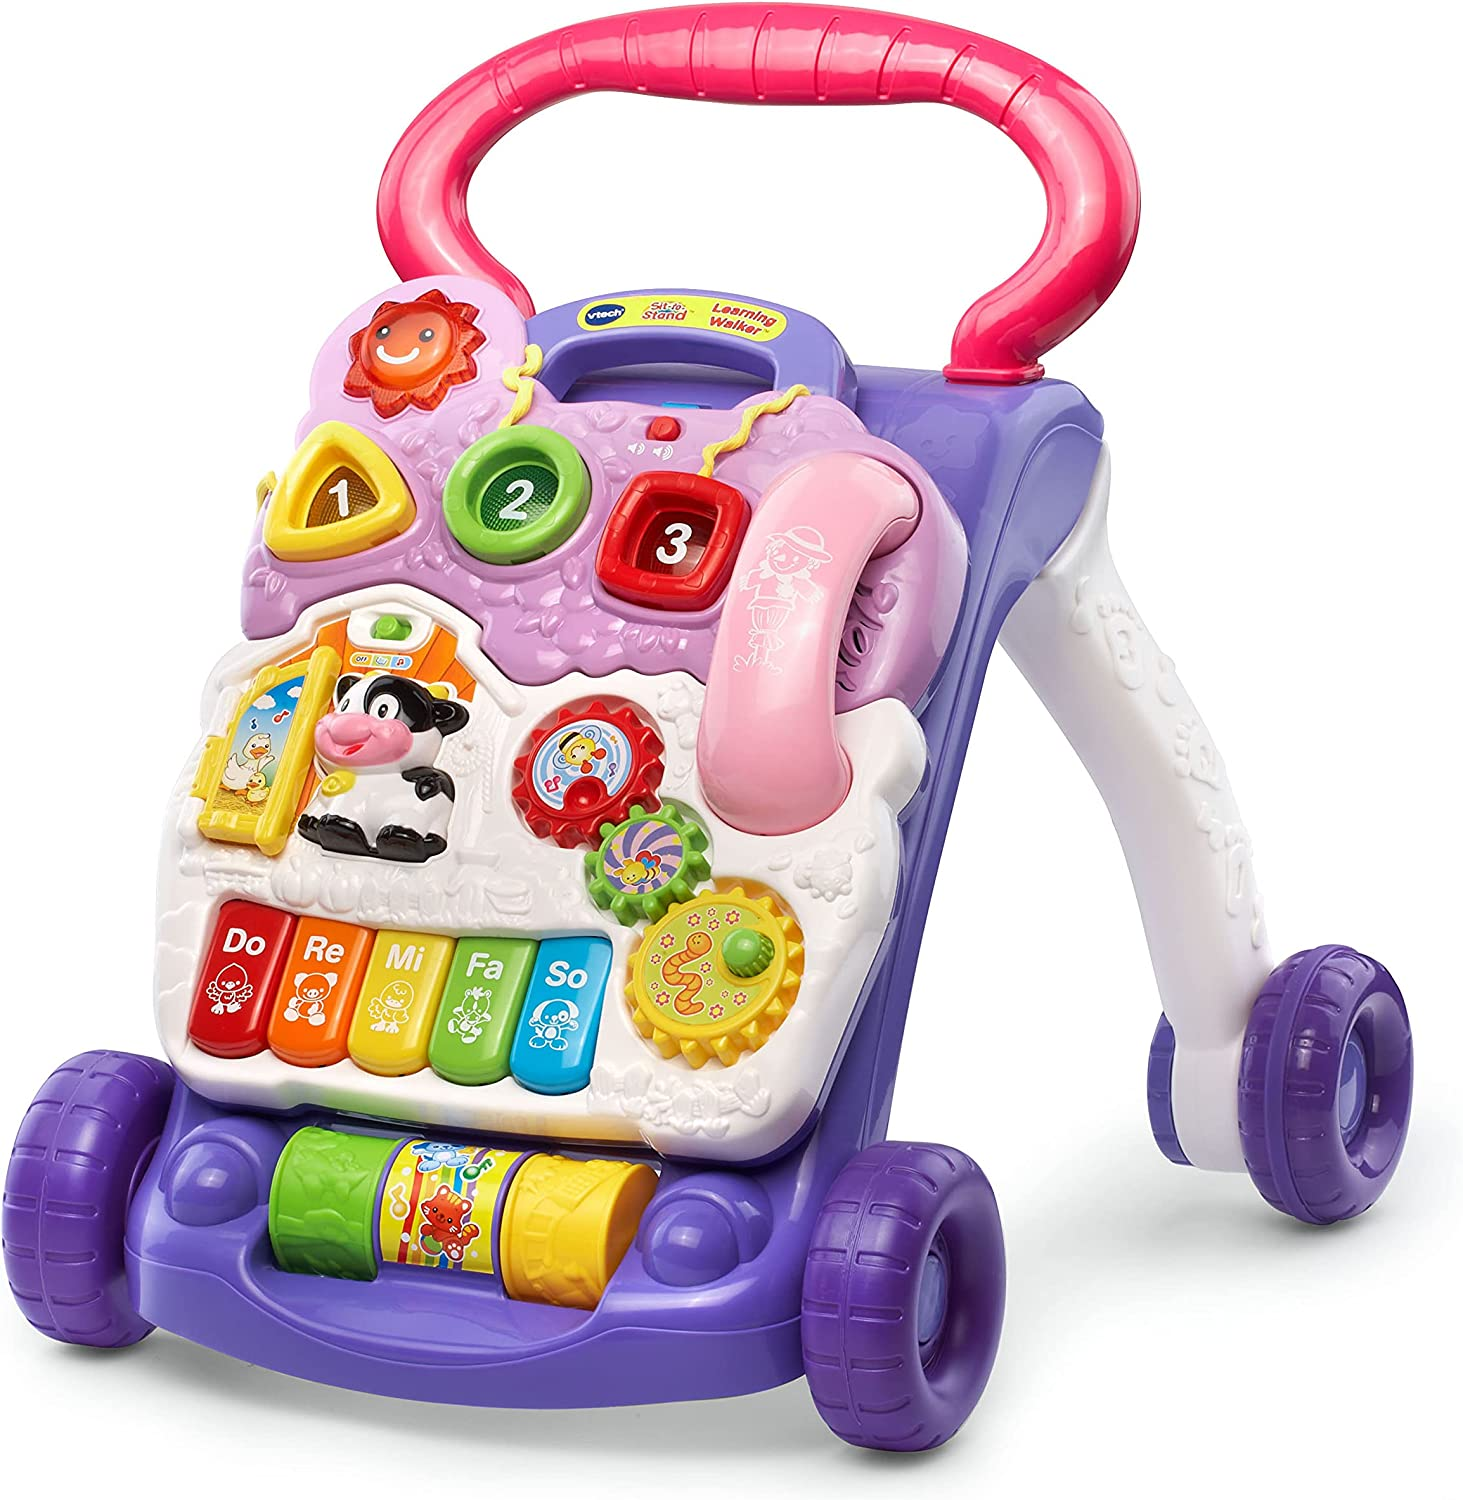 Choice VTech Cheap Sit-to-Stand Learning Walker Free Packaging Frustration